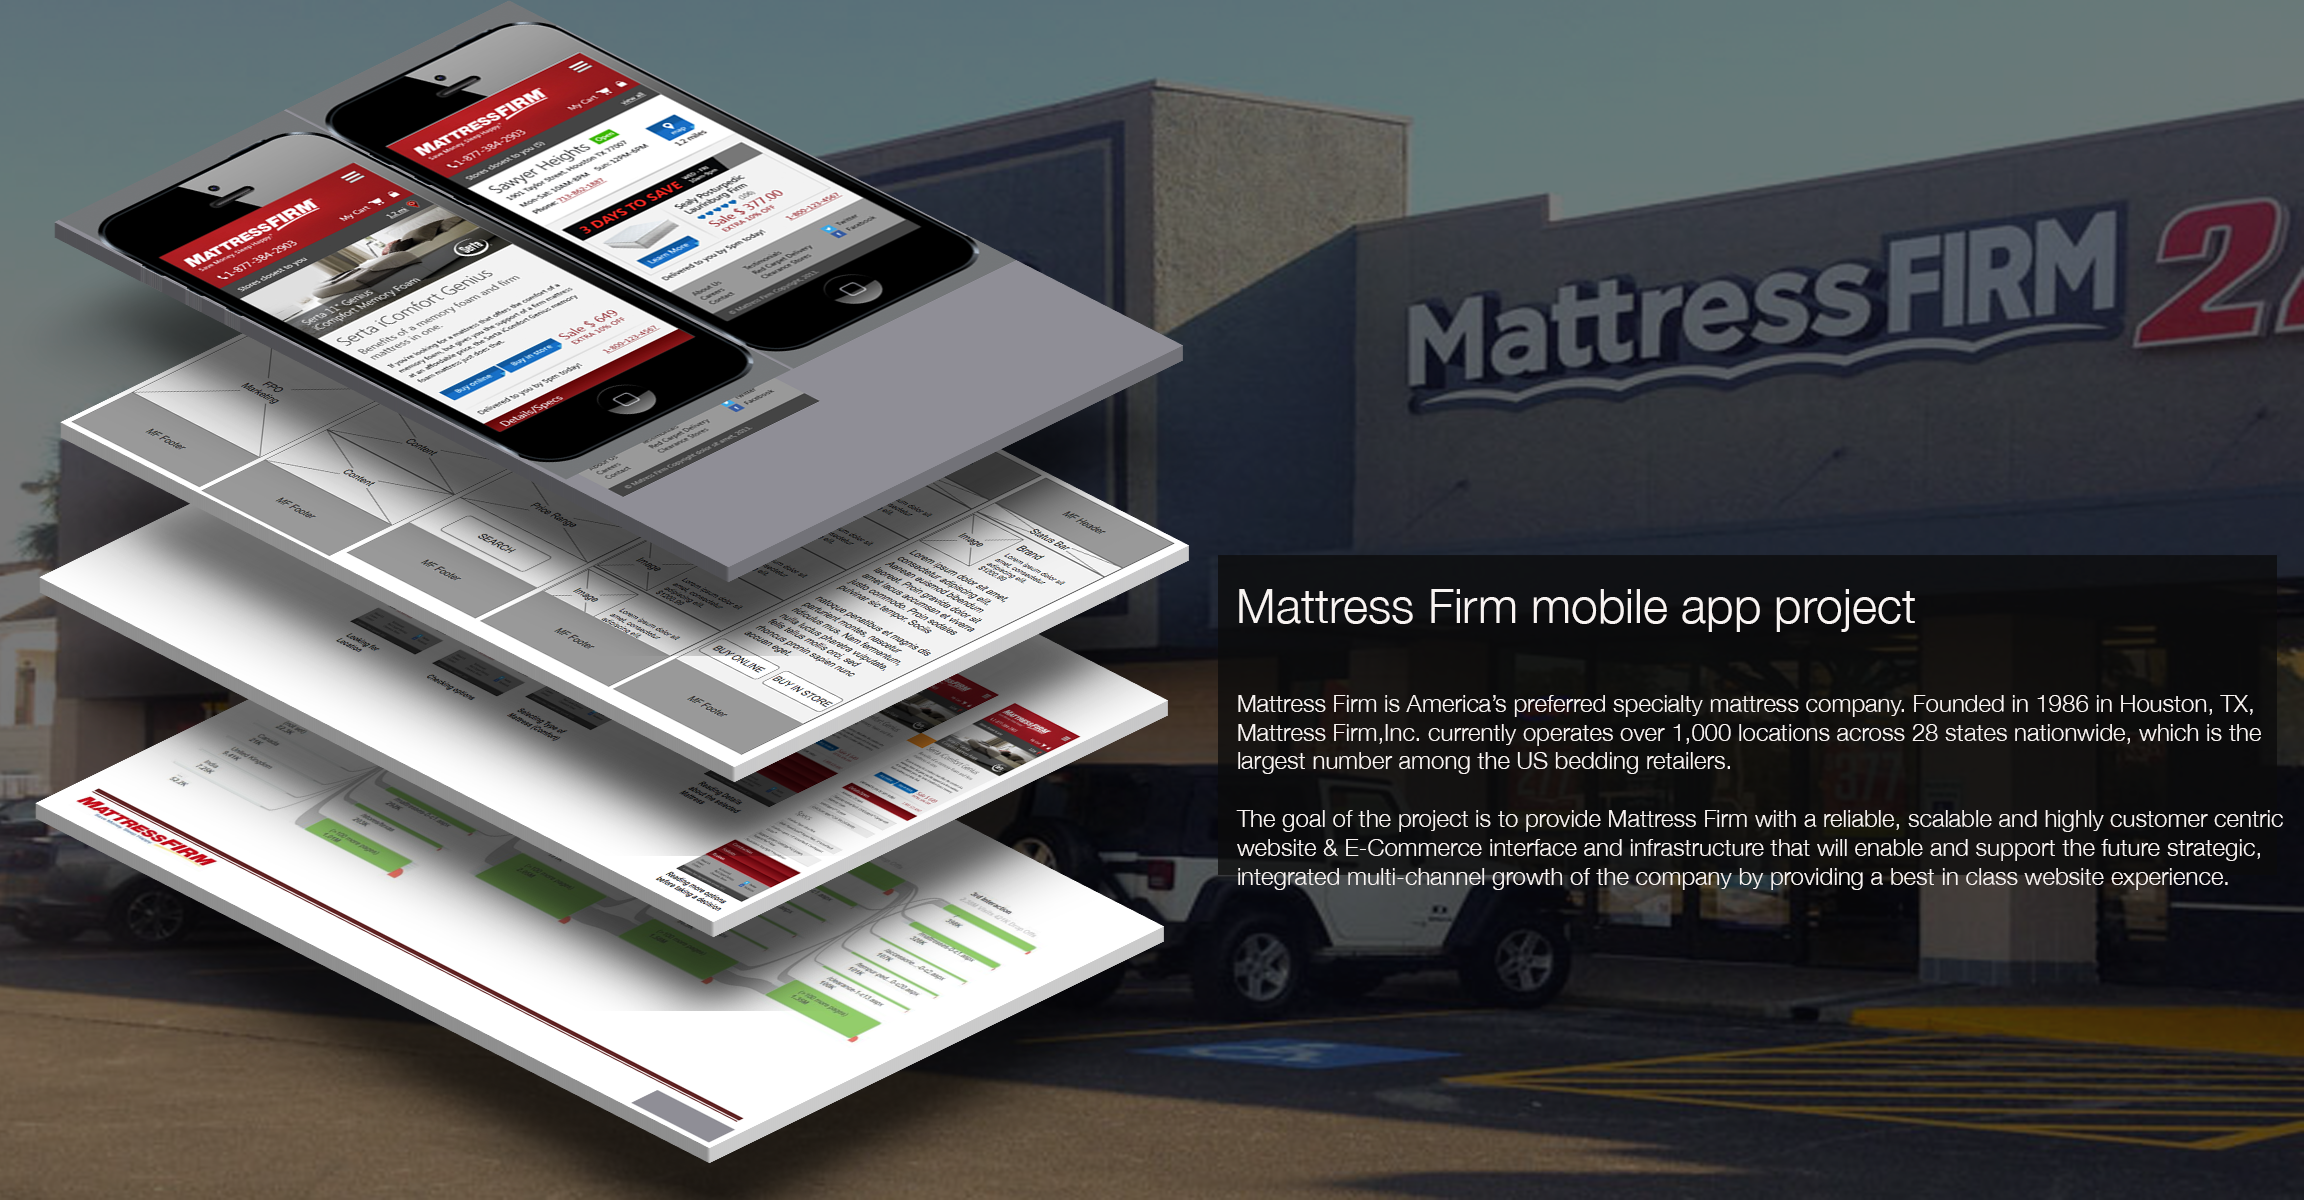 Mattress firm UX mobile ecommerce app